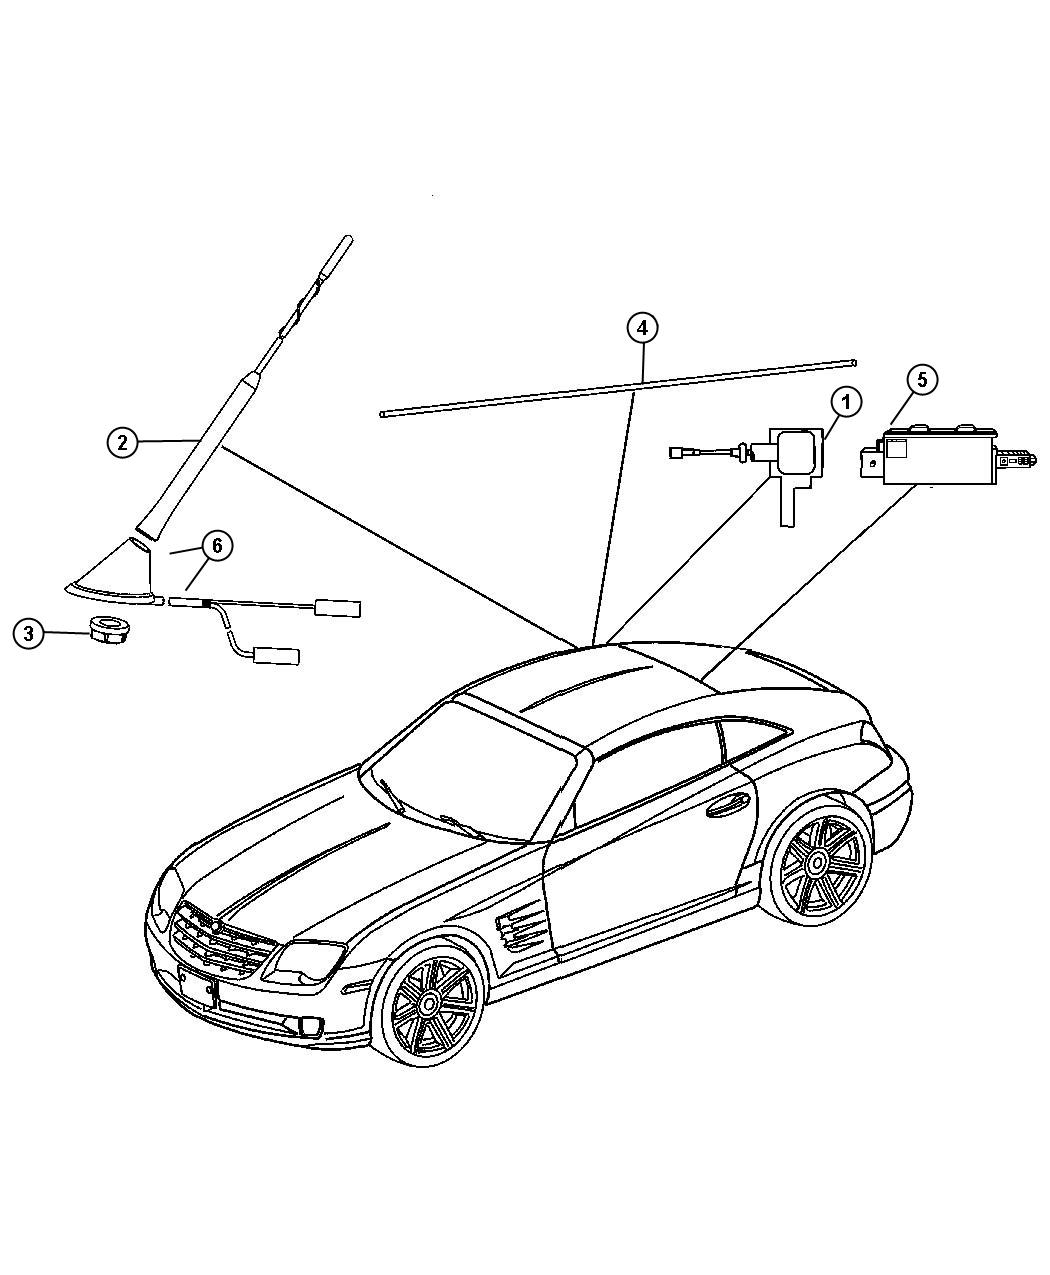 Crossfire Antenna and Related Items